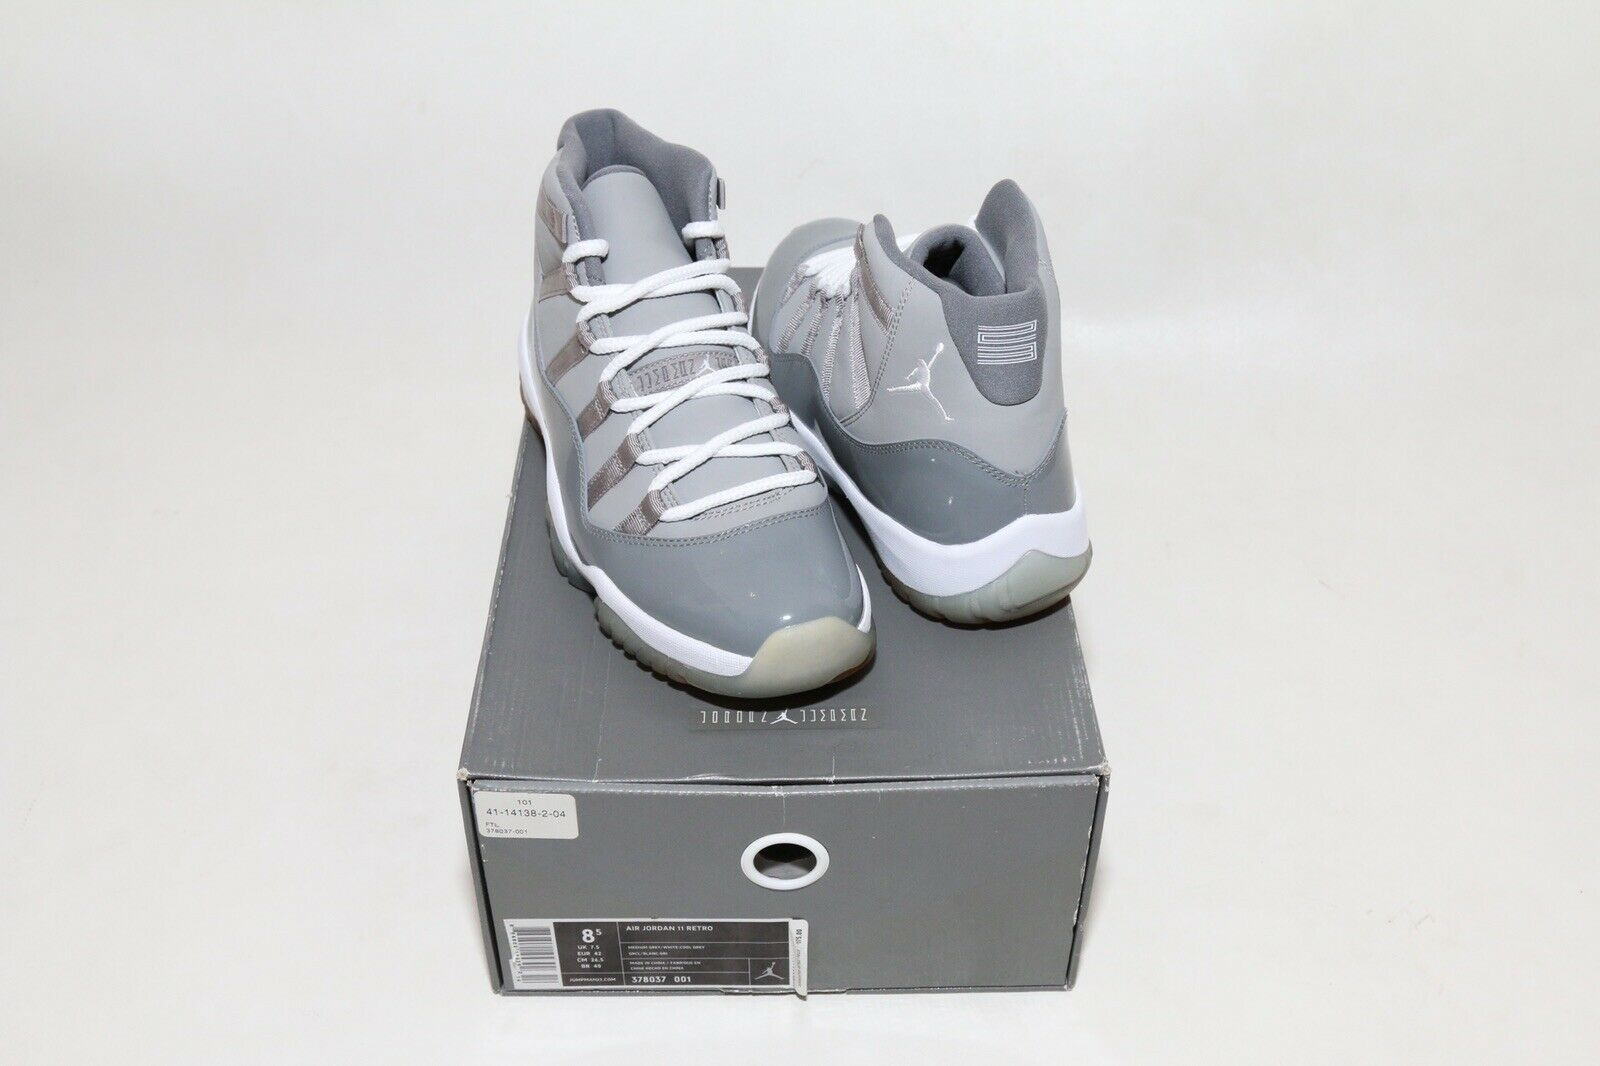 Air Jordan 11 XI Retro Cool Grey 2010 Size 8.5 DS BRAND NEW OG